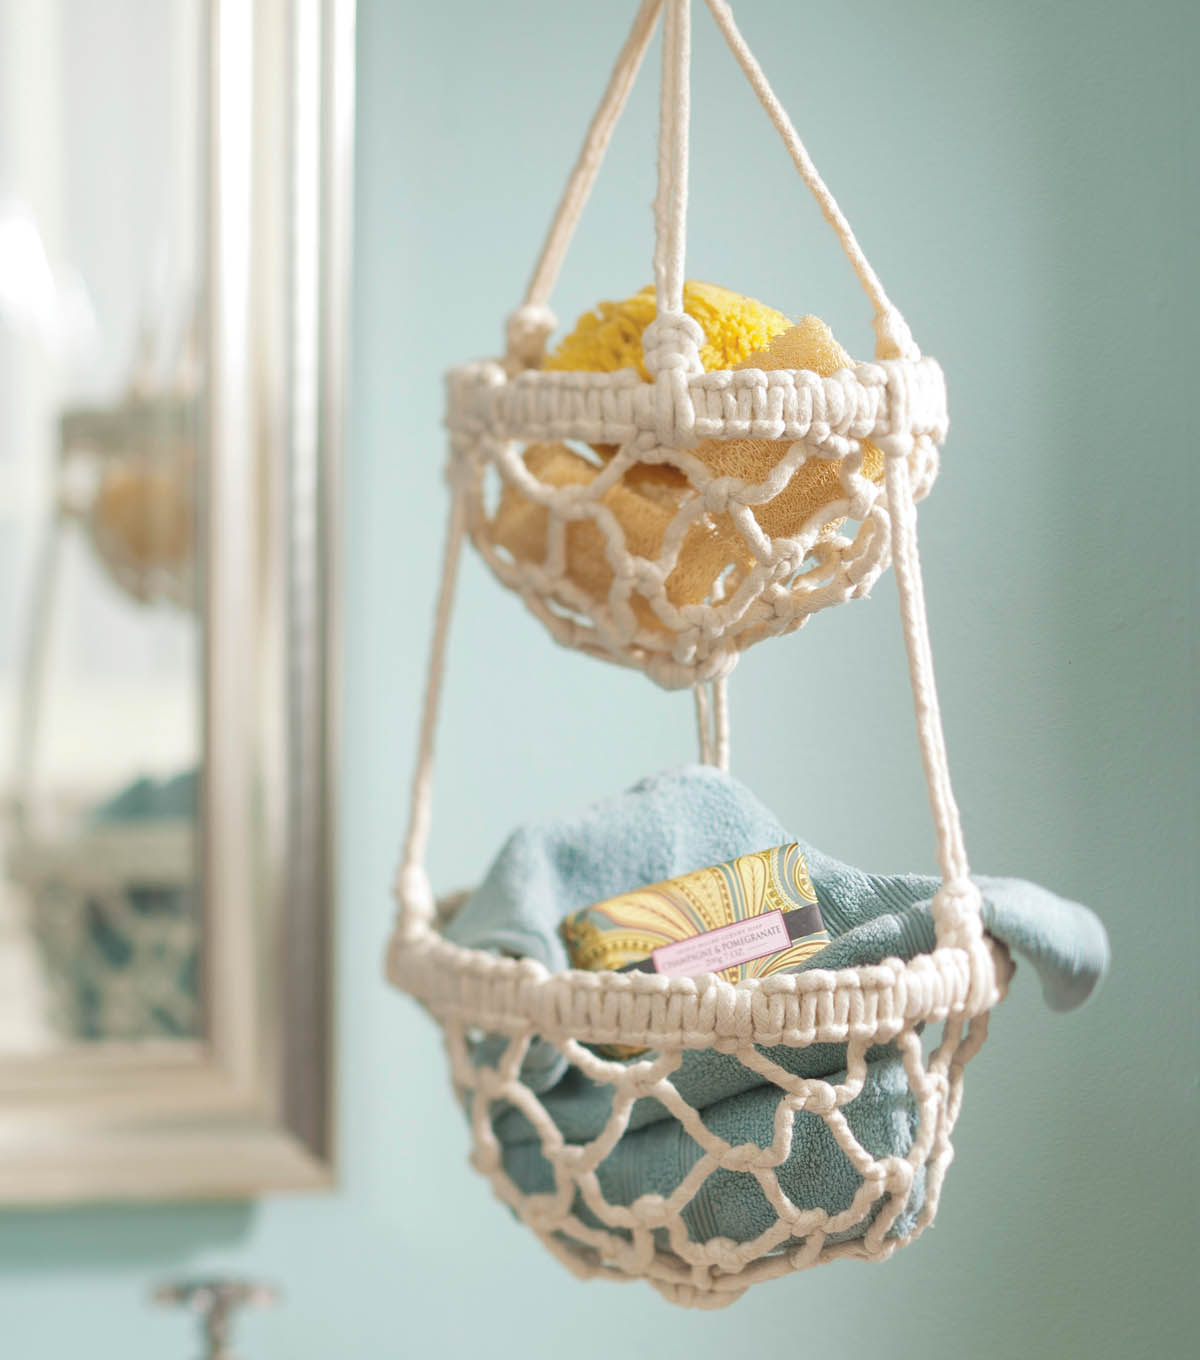 Herb Planter Diy Top 10 Macrame Projects To Diy This Summer Top Inspired